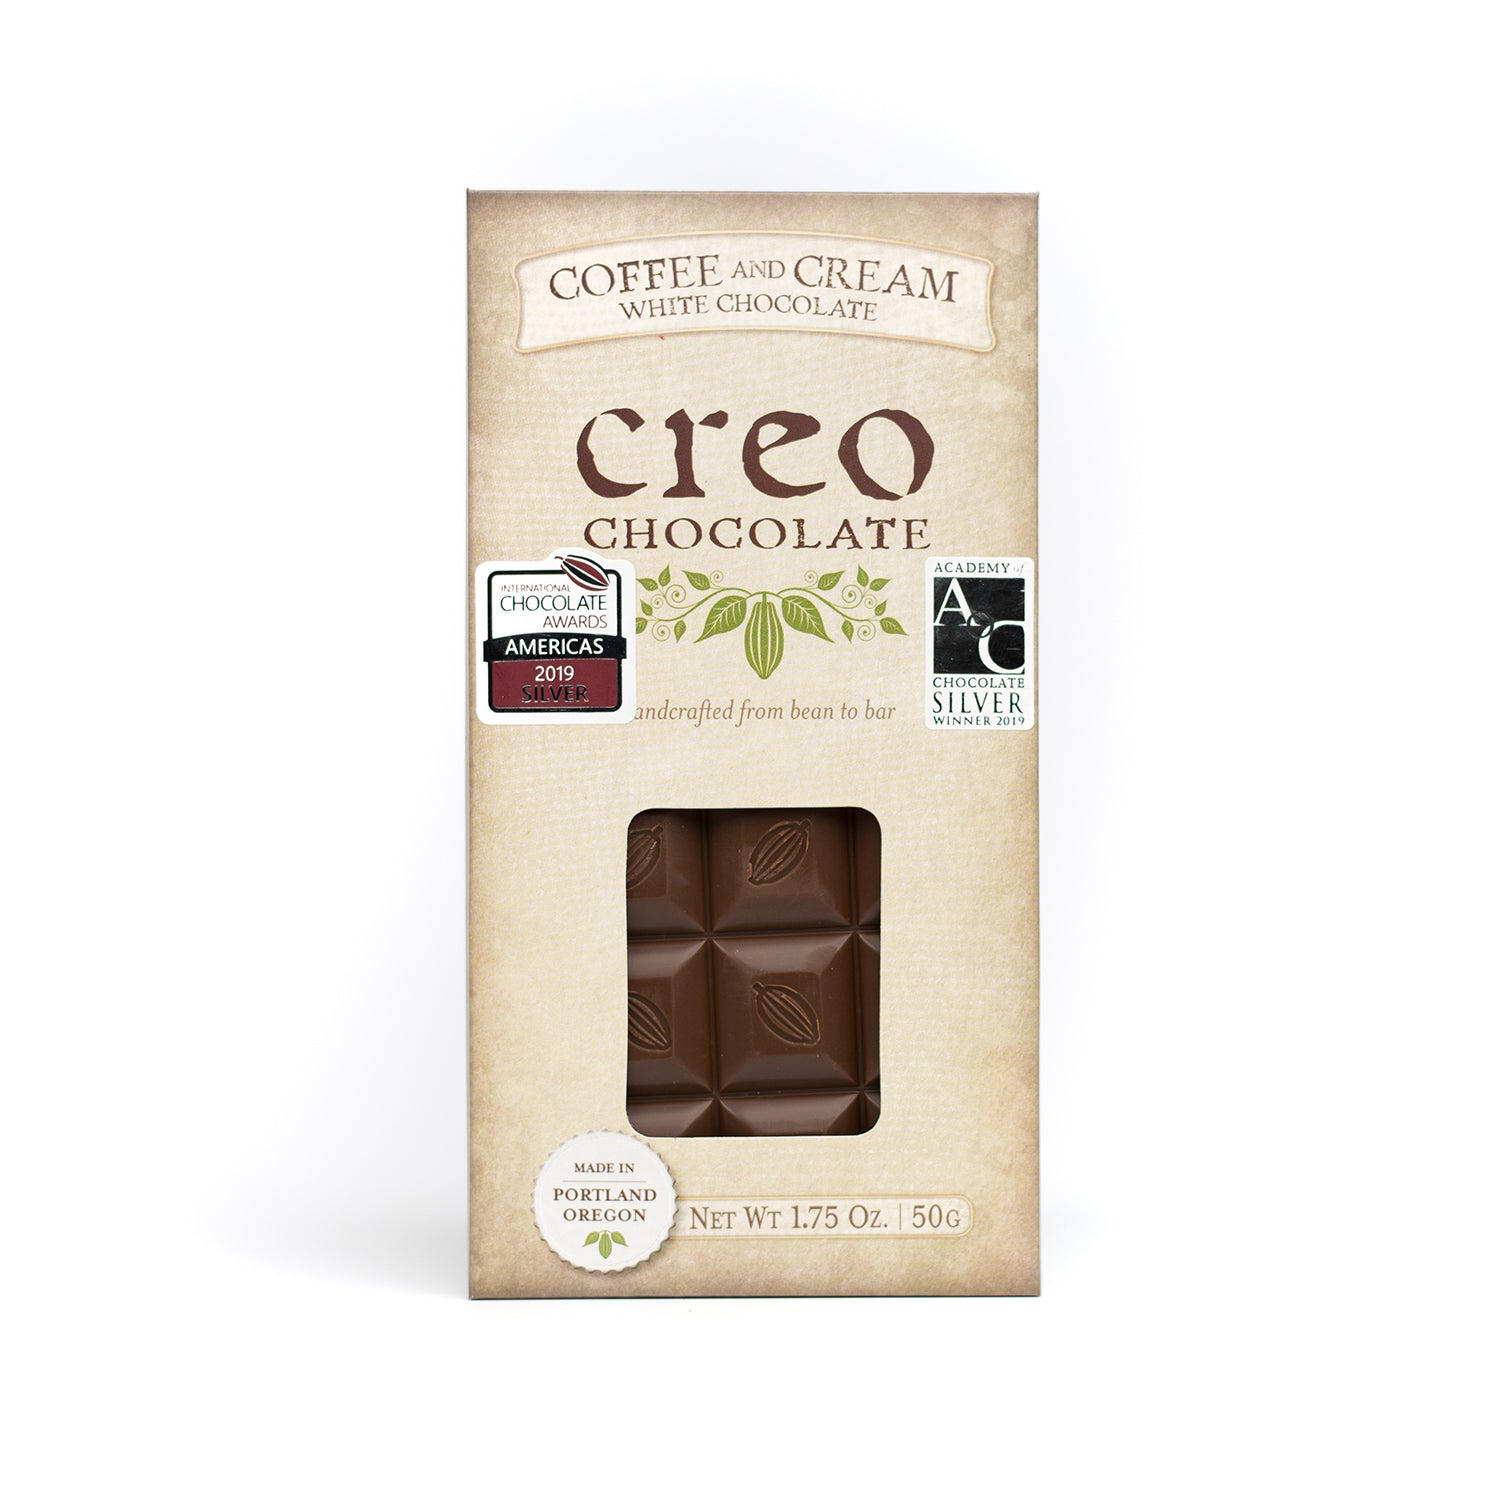 Coffee & Cream White Chocolate Bar - Creo Chocolate